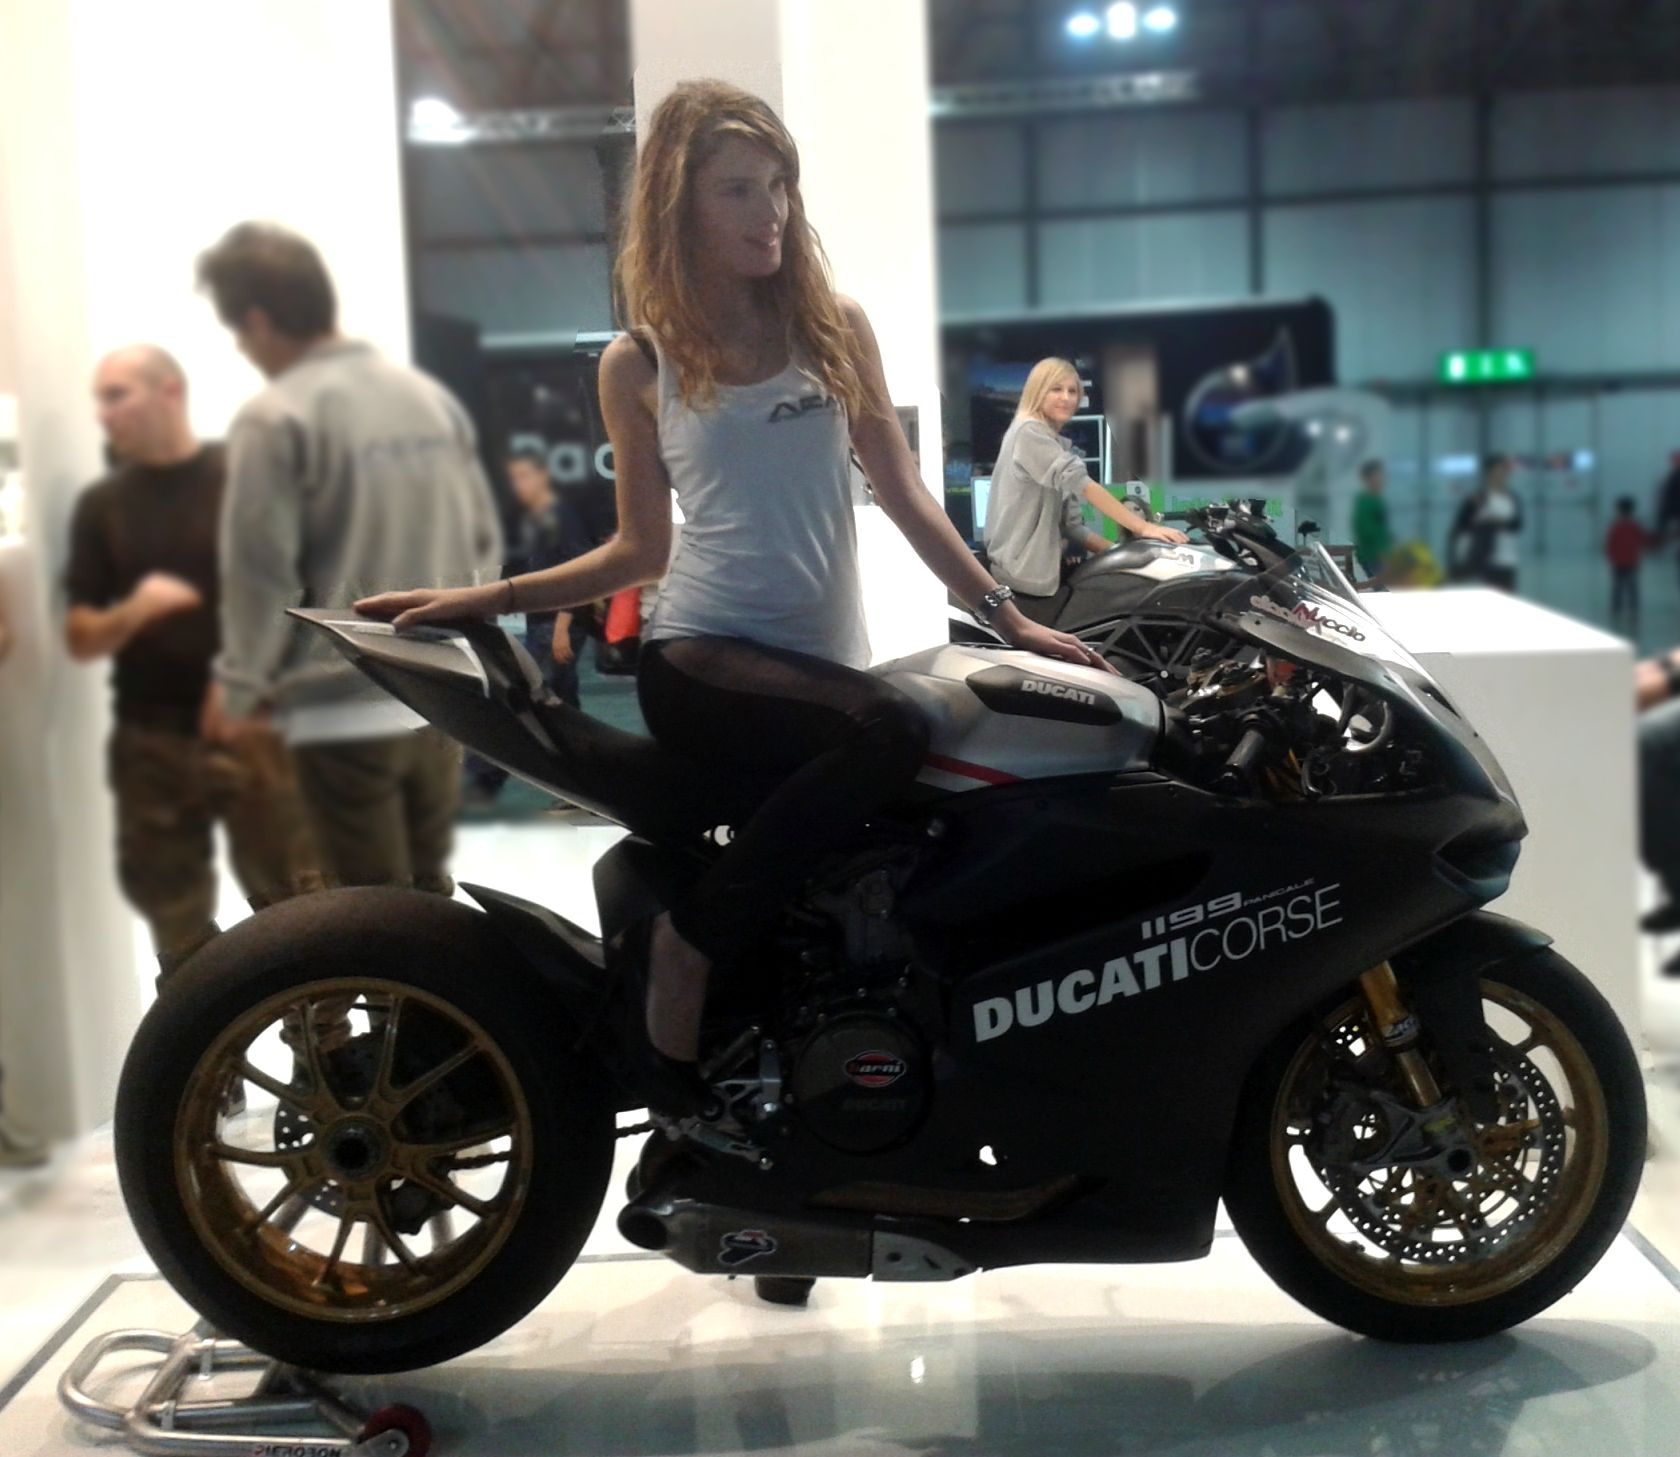 ducati 1199 panigale by acm factory eicma milano italy ph